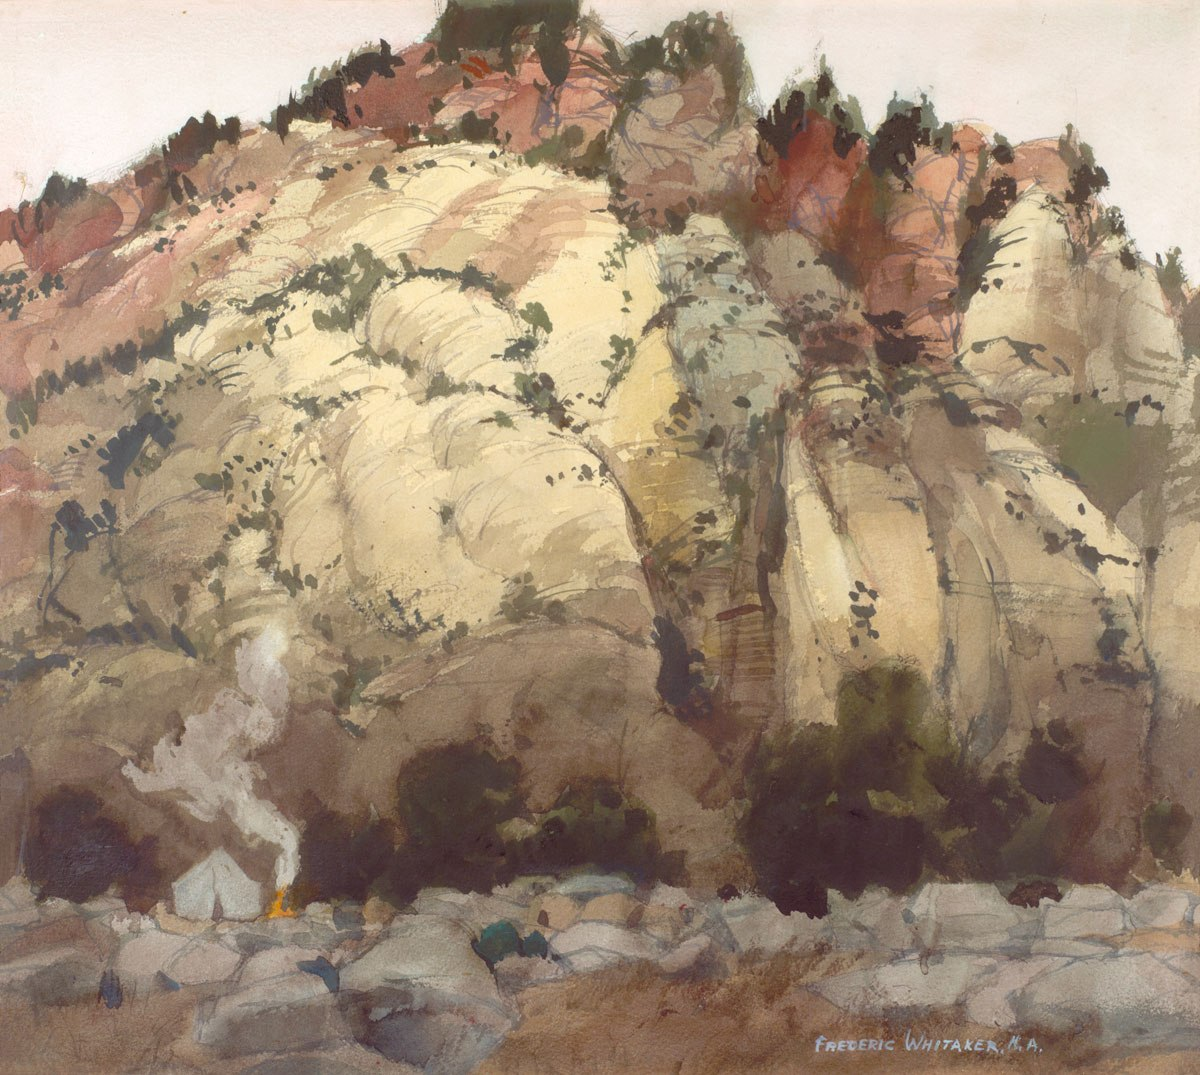 """""""Camping Neath the Campanile"""" 1971 © Frederic Whitaker N.A,  16x22 inches Watercolor"""